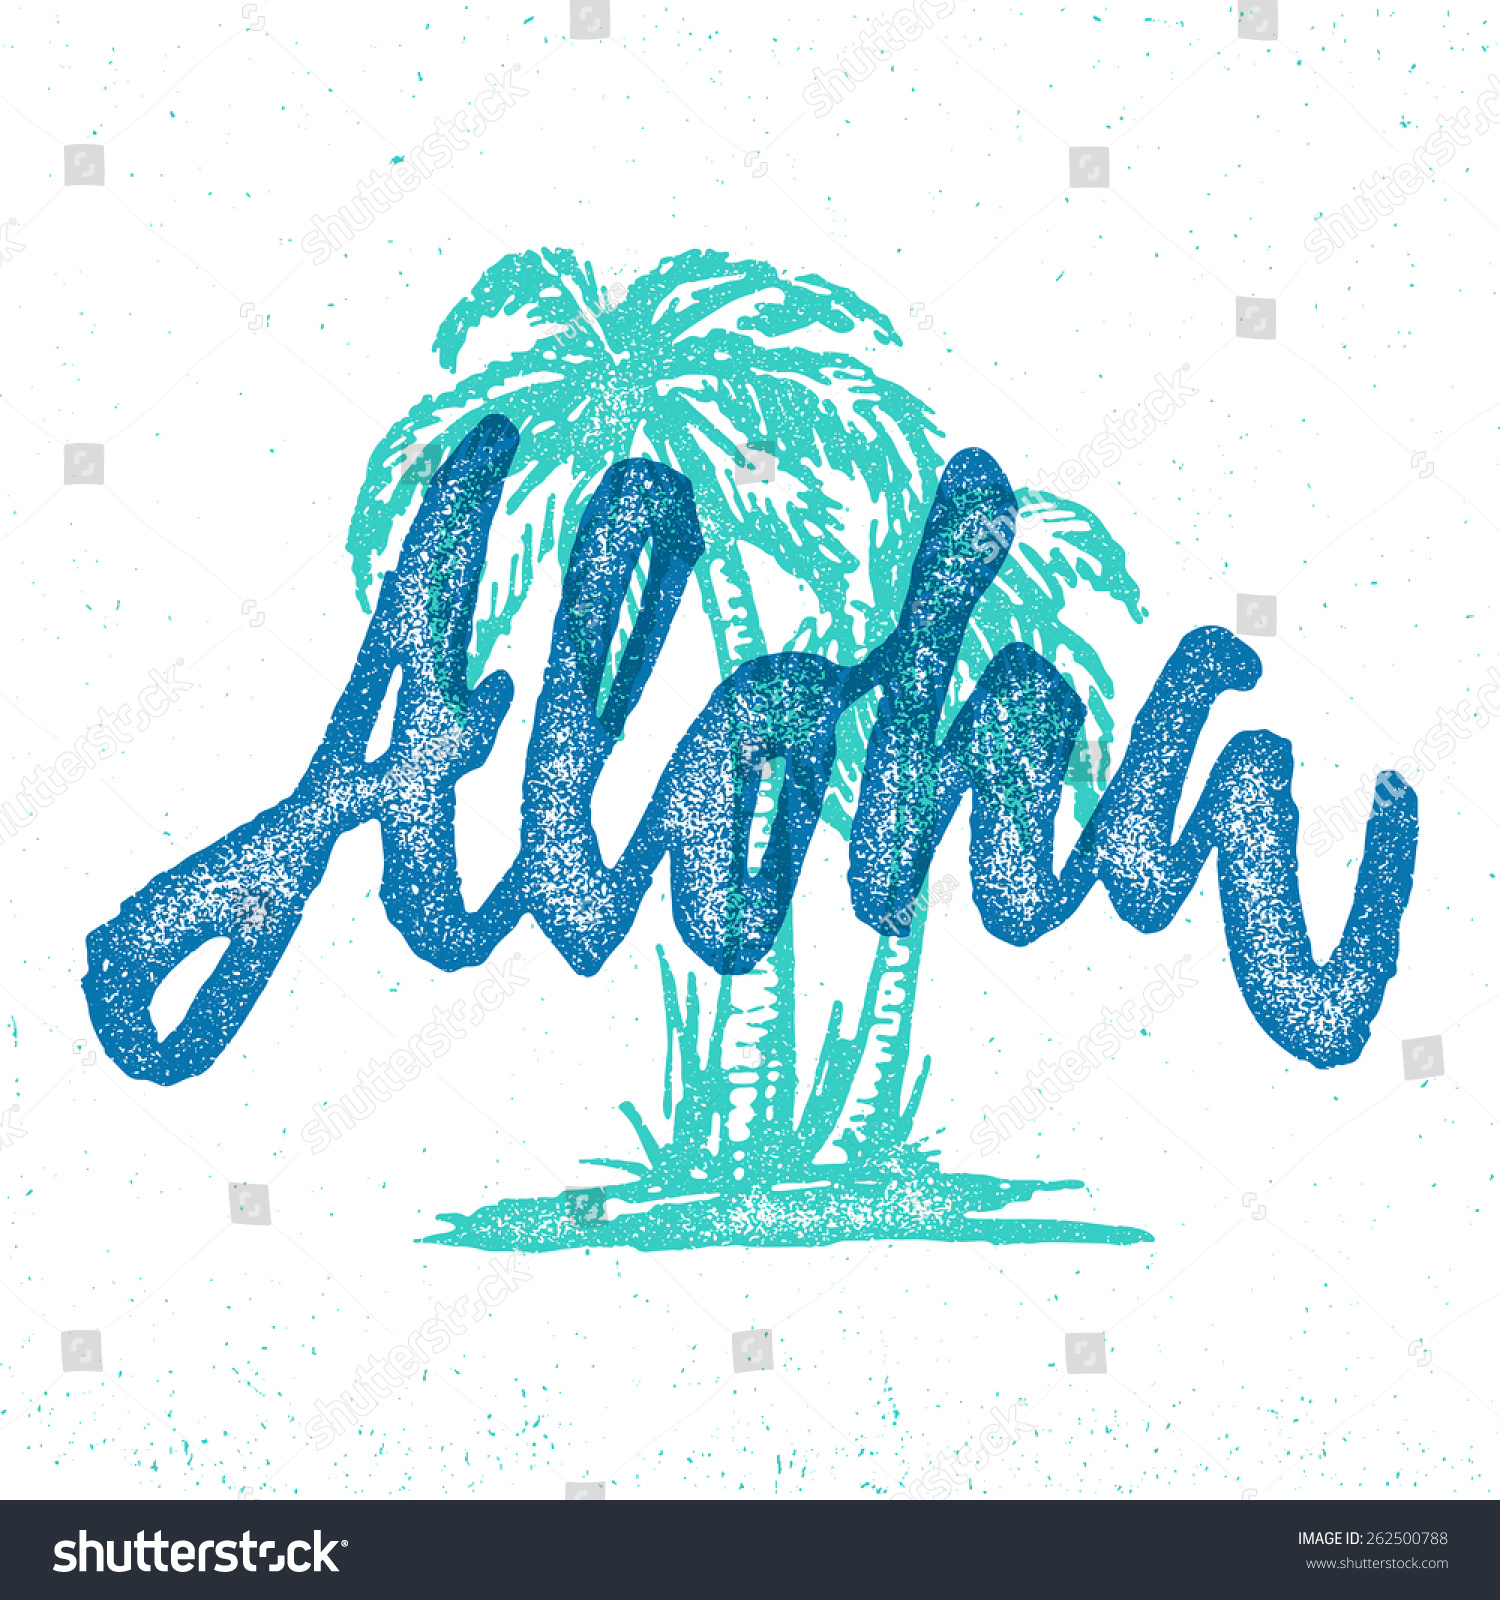 Design t shirt hand made - Aloha Hawaiian Handmade Tropical Exotic T Shirt Graphics Summer Apparel Print Design Retro Drawn